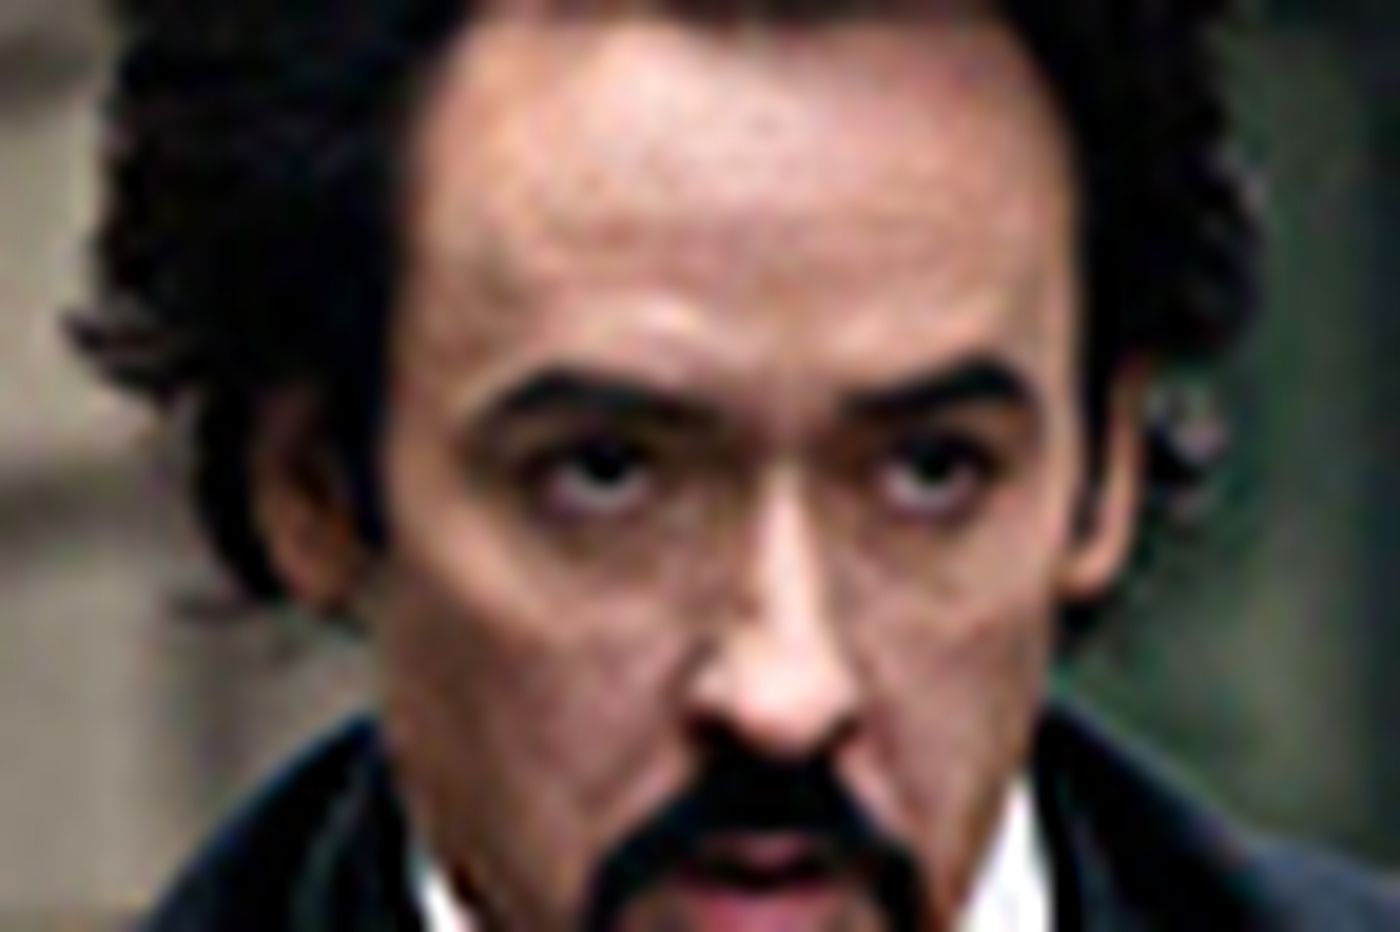 'The Raven': Poe himself could have done better